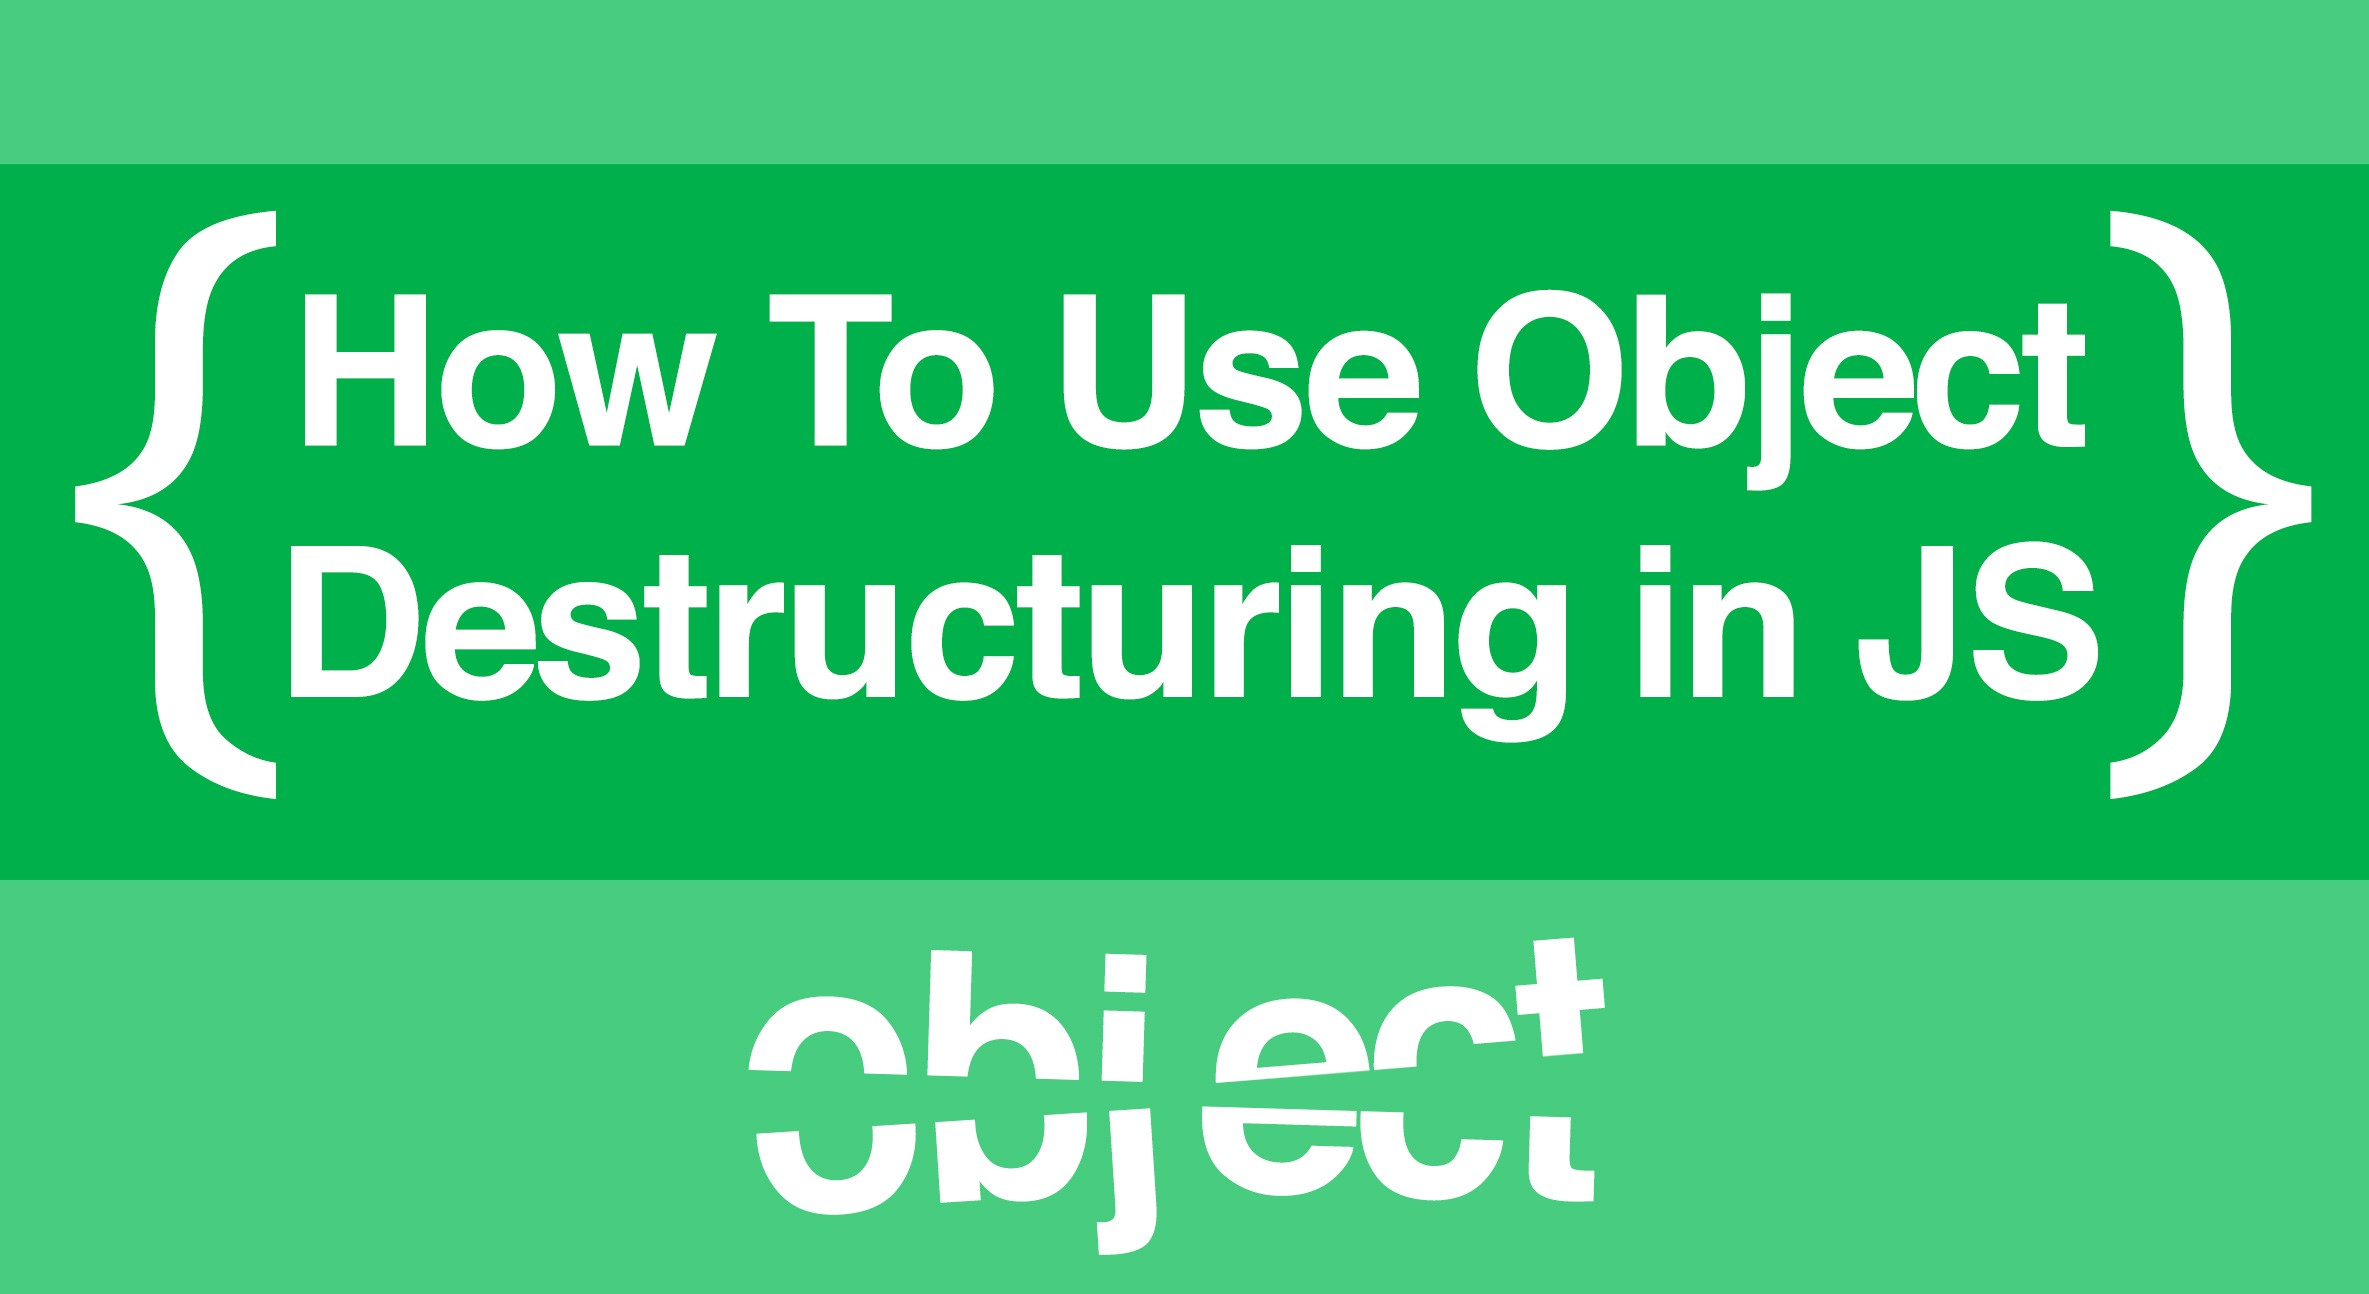 How To Use Object Destructuring in Modern Javascript